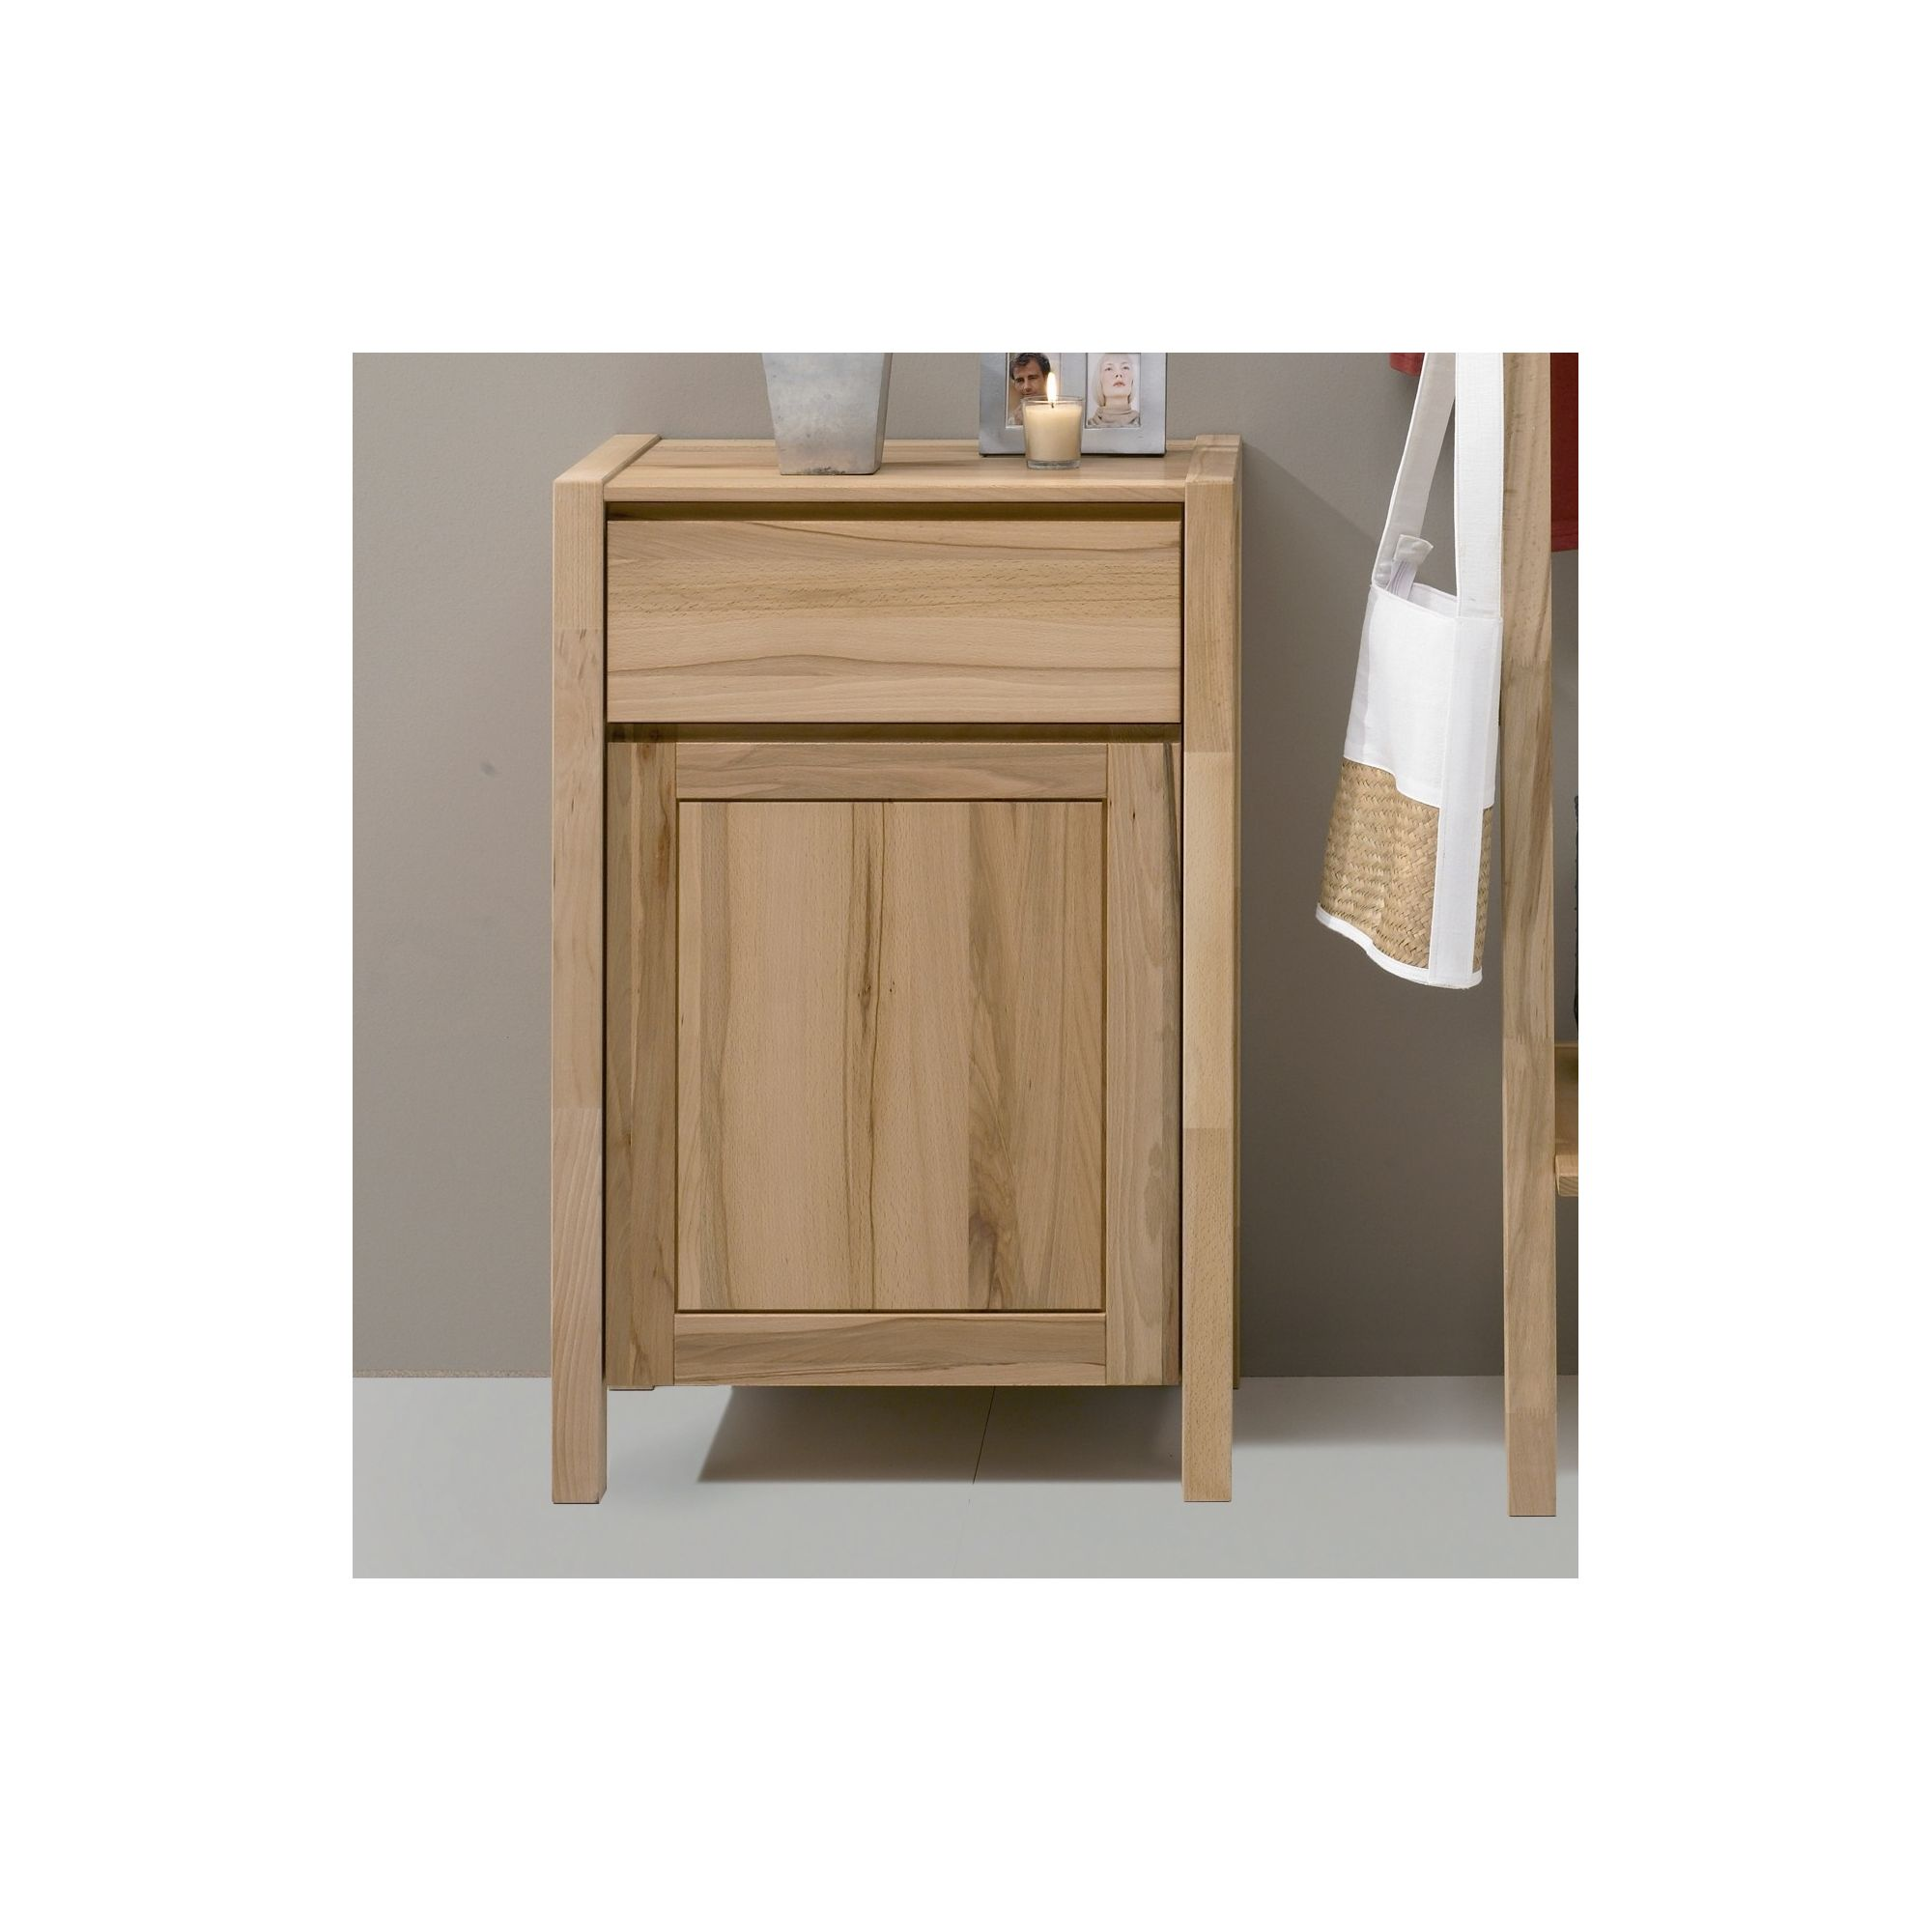 Oestergaard Mille Chest of Drawers with 1 Drawer - Heartwood Beech solid at Tescos Direct